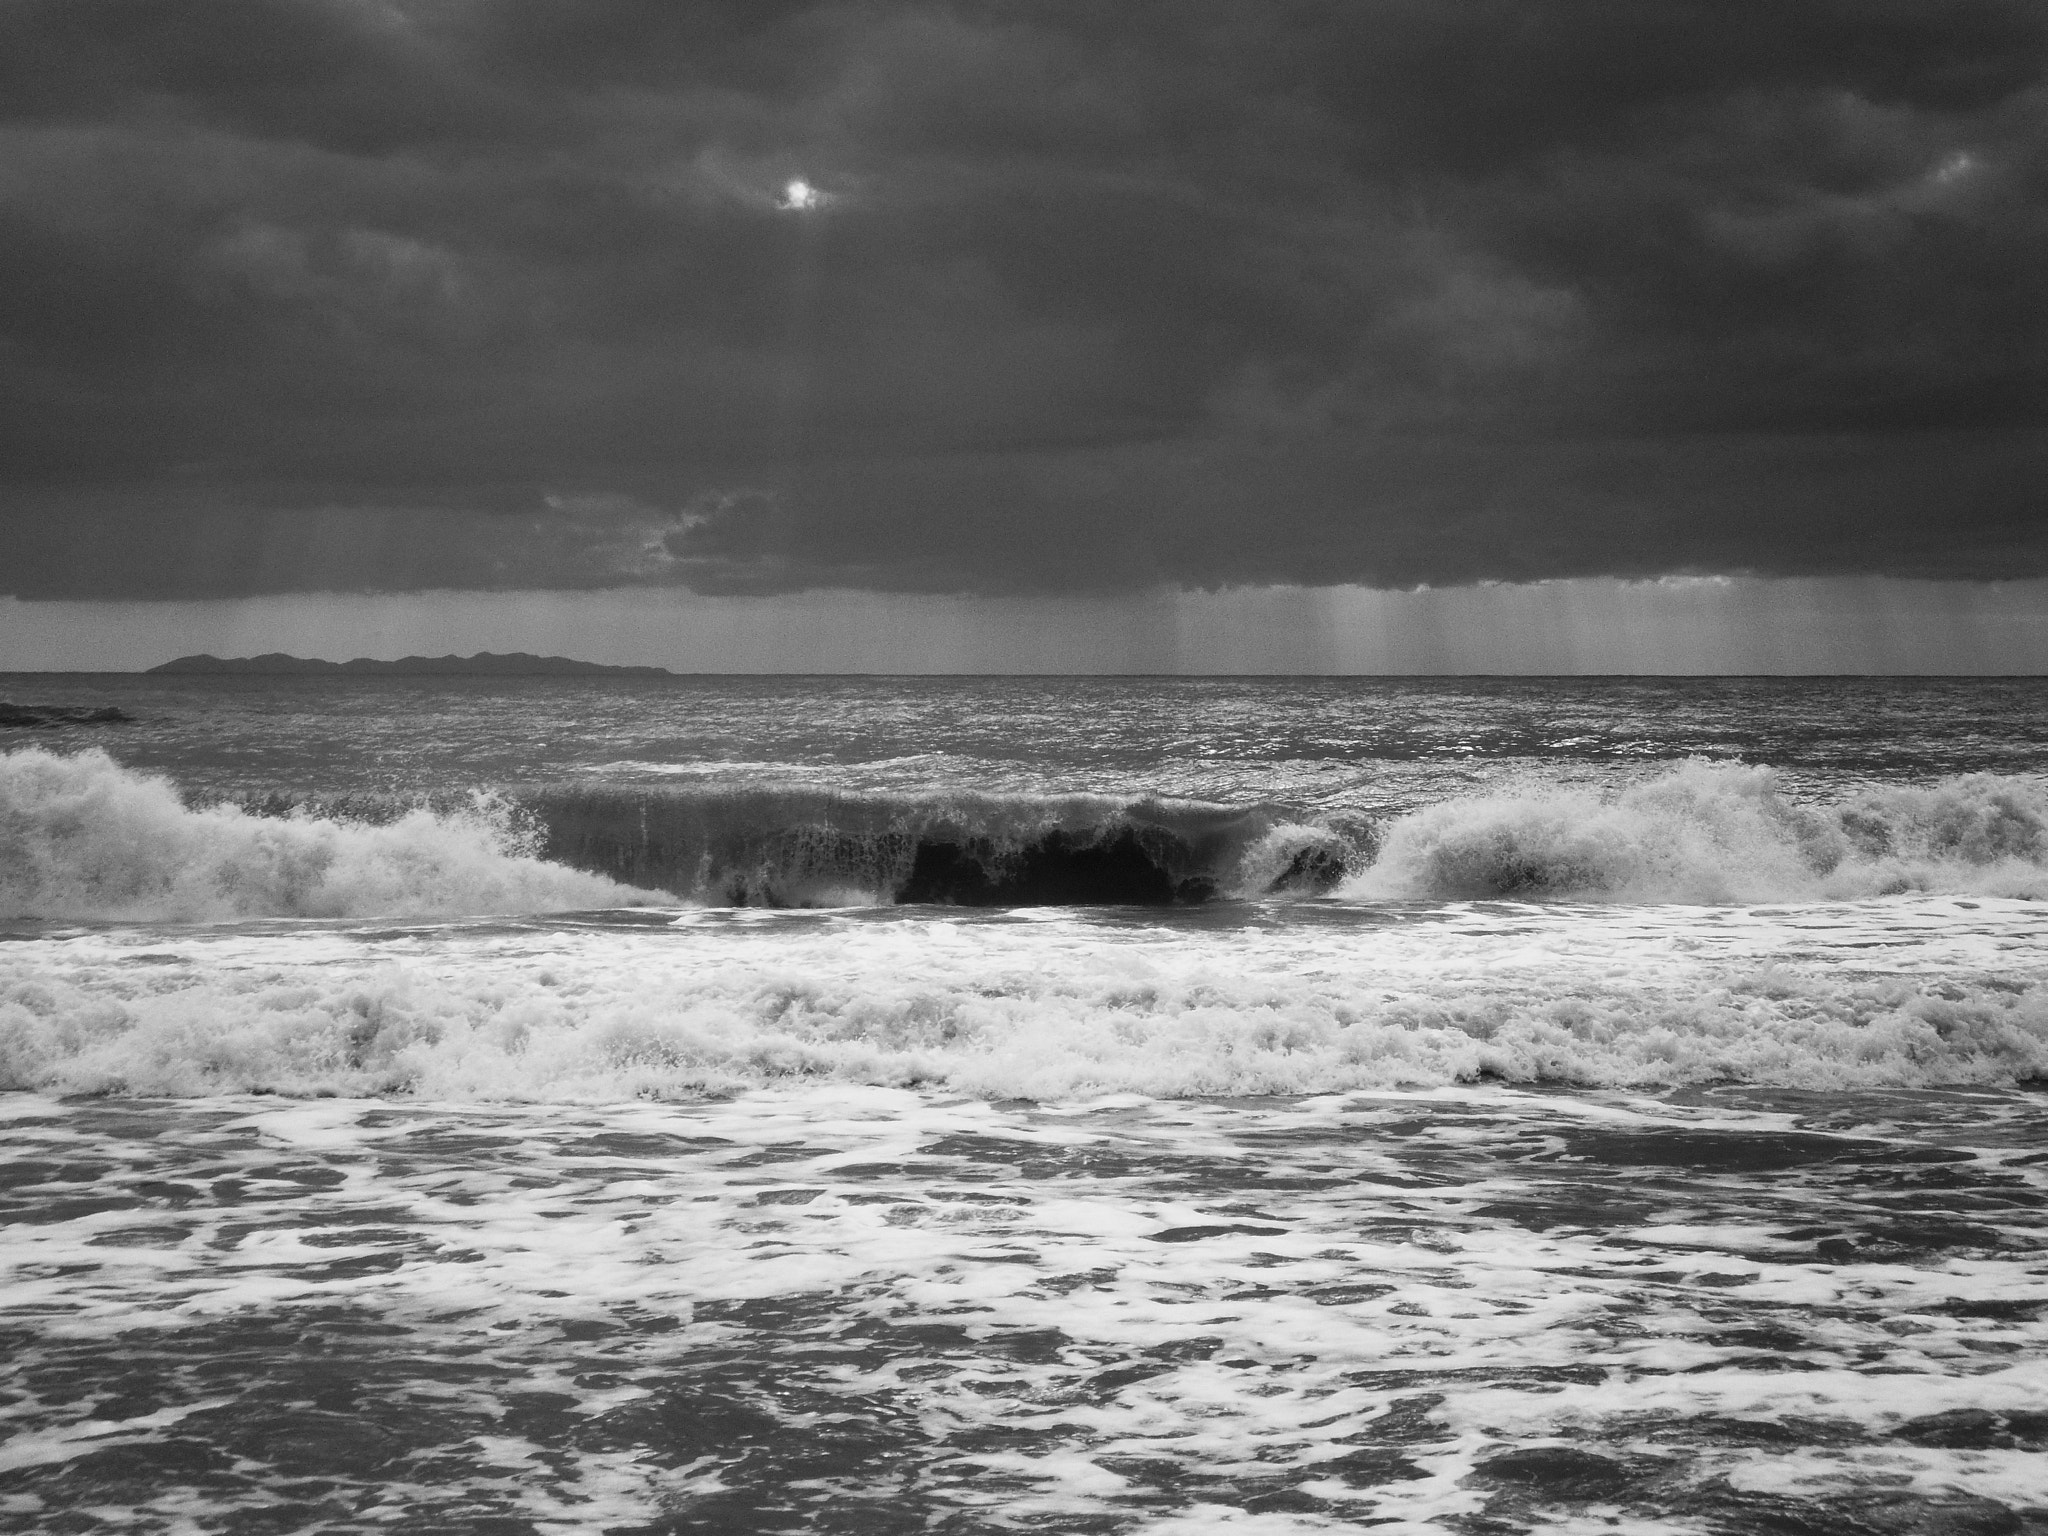 Photograph rough seas by Andrea Nigra on 500px